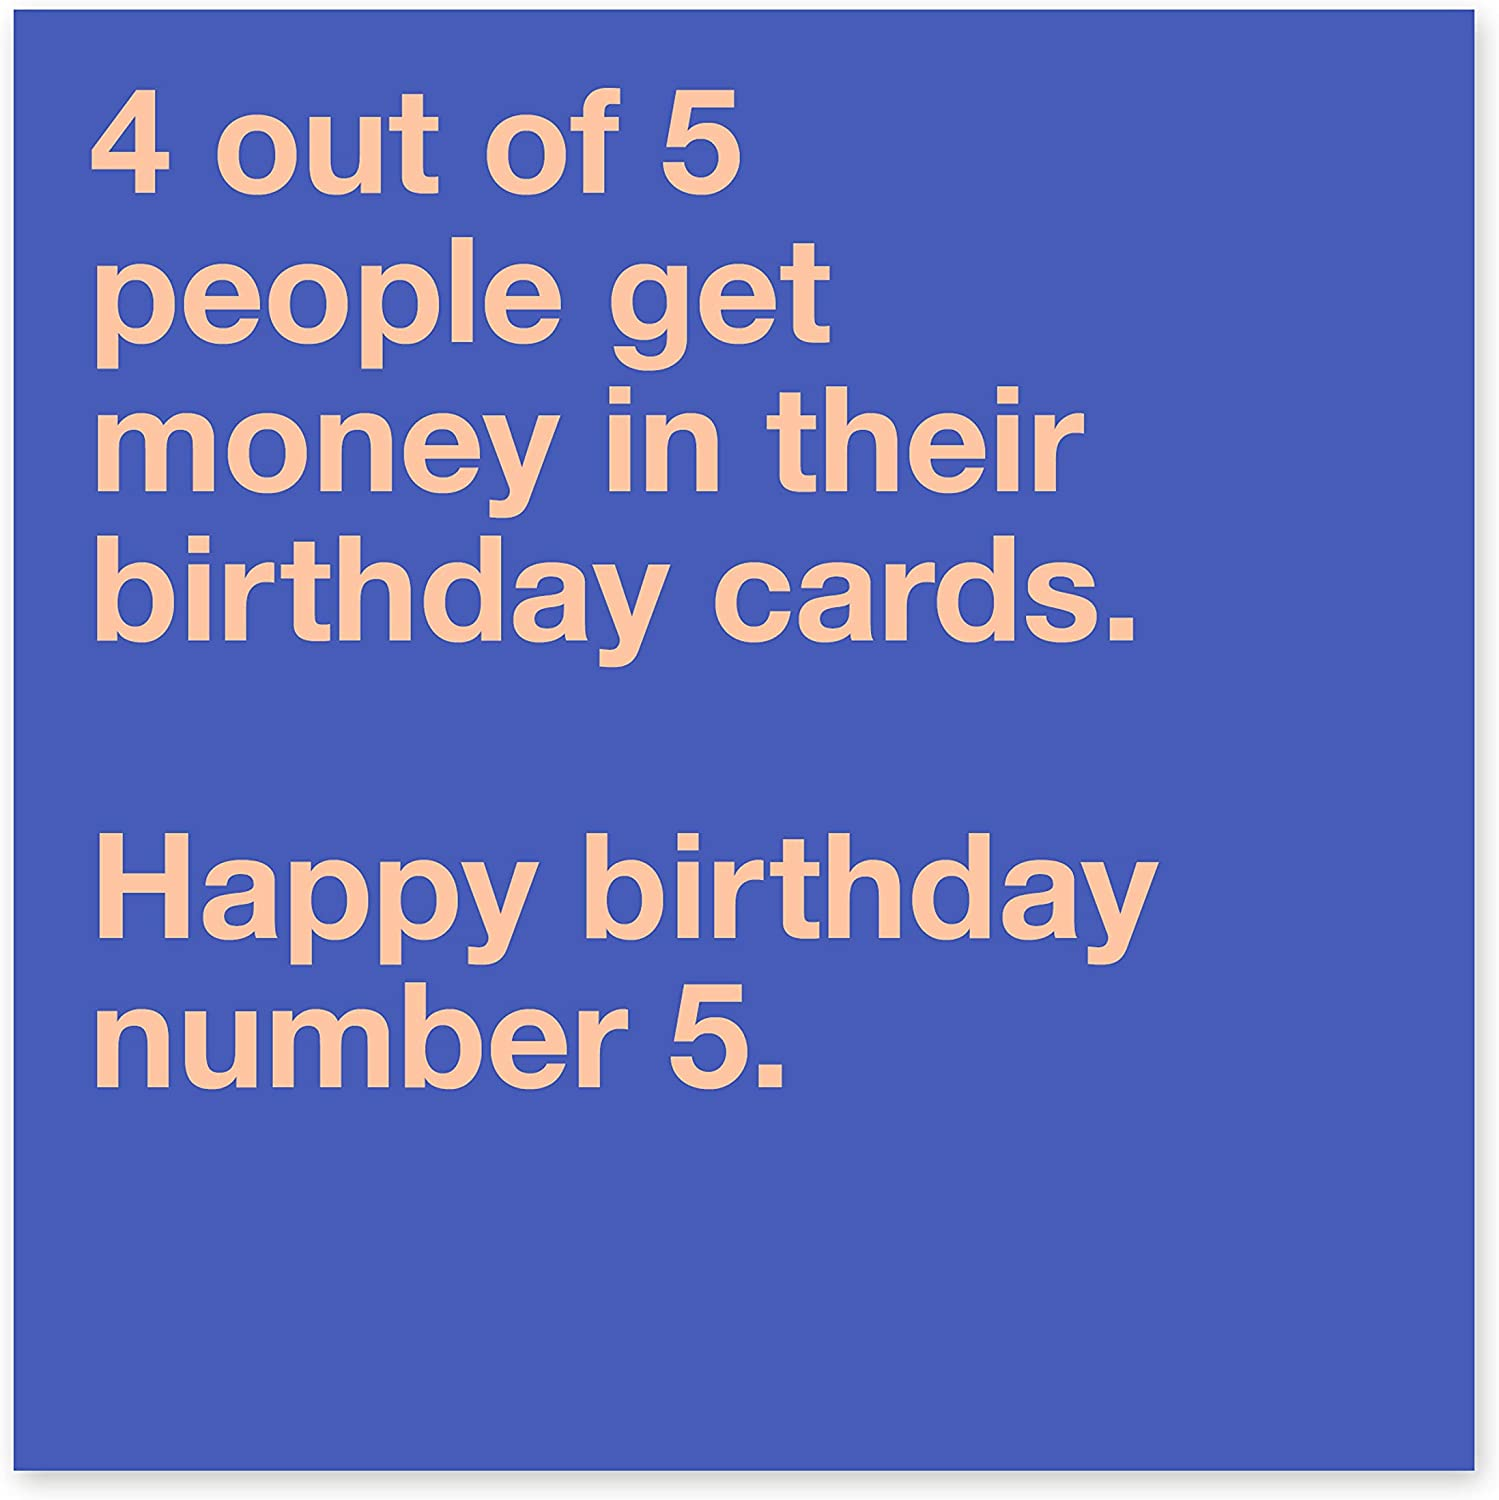 Funny Birthday Card4 Out of 5 People for Men /& Women Central 23 Mum Dad Husband Wife Brother Sister Cute Animal Dog Cards Joke Humour Witty Pun Banter 21st 30th 40th